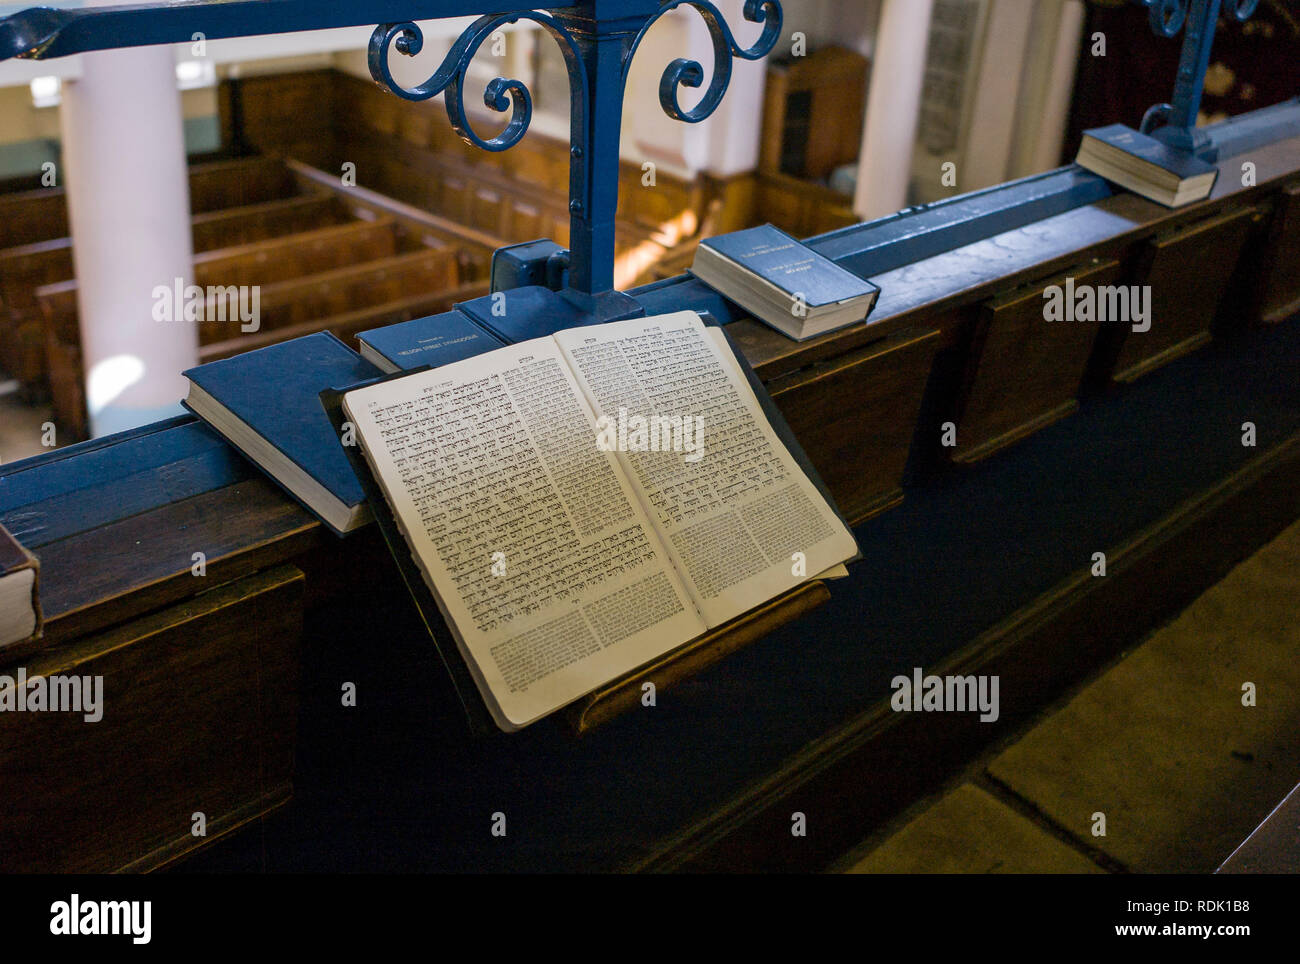 A Jewish prayer book open on a bench in a synagogue in the East End of London, surrounded by other prayer books, showing a page in Hebrew - Stock Image